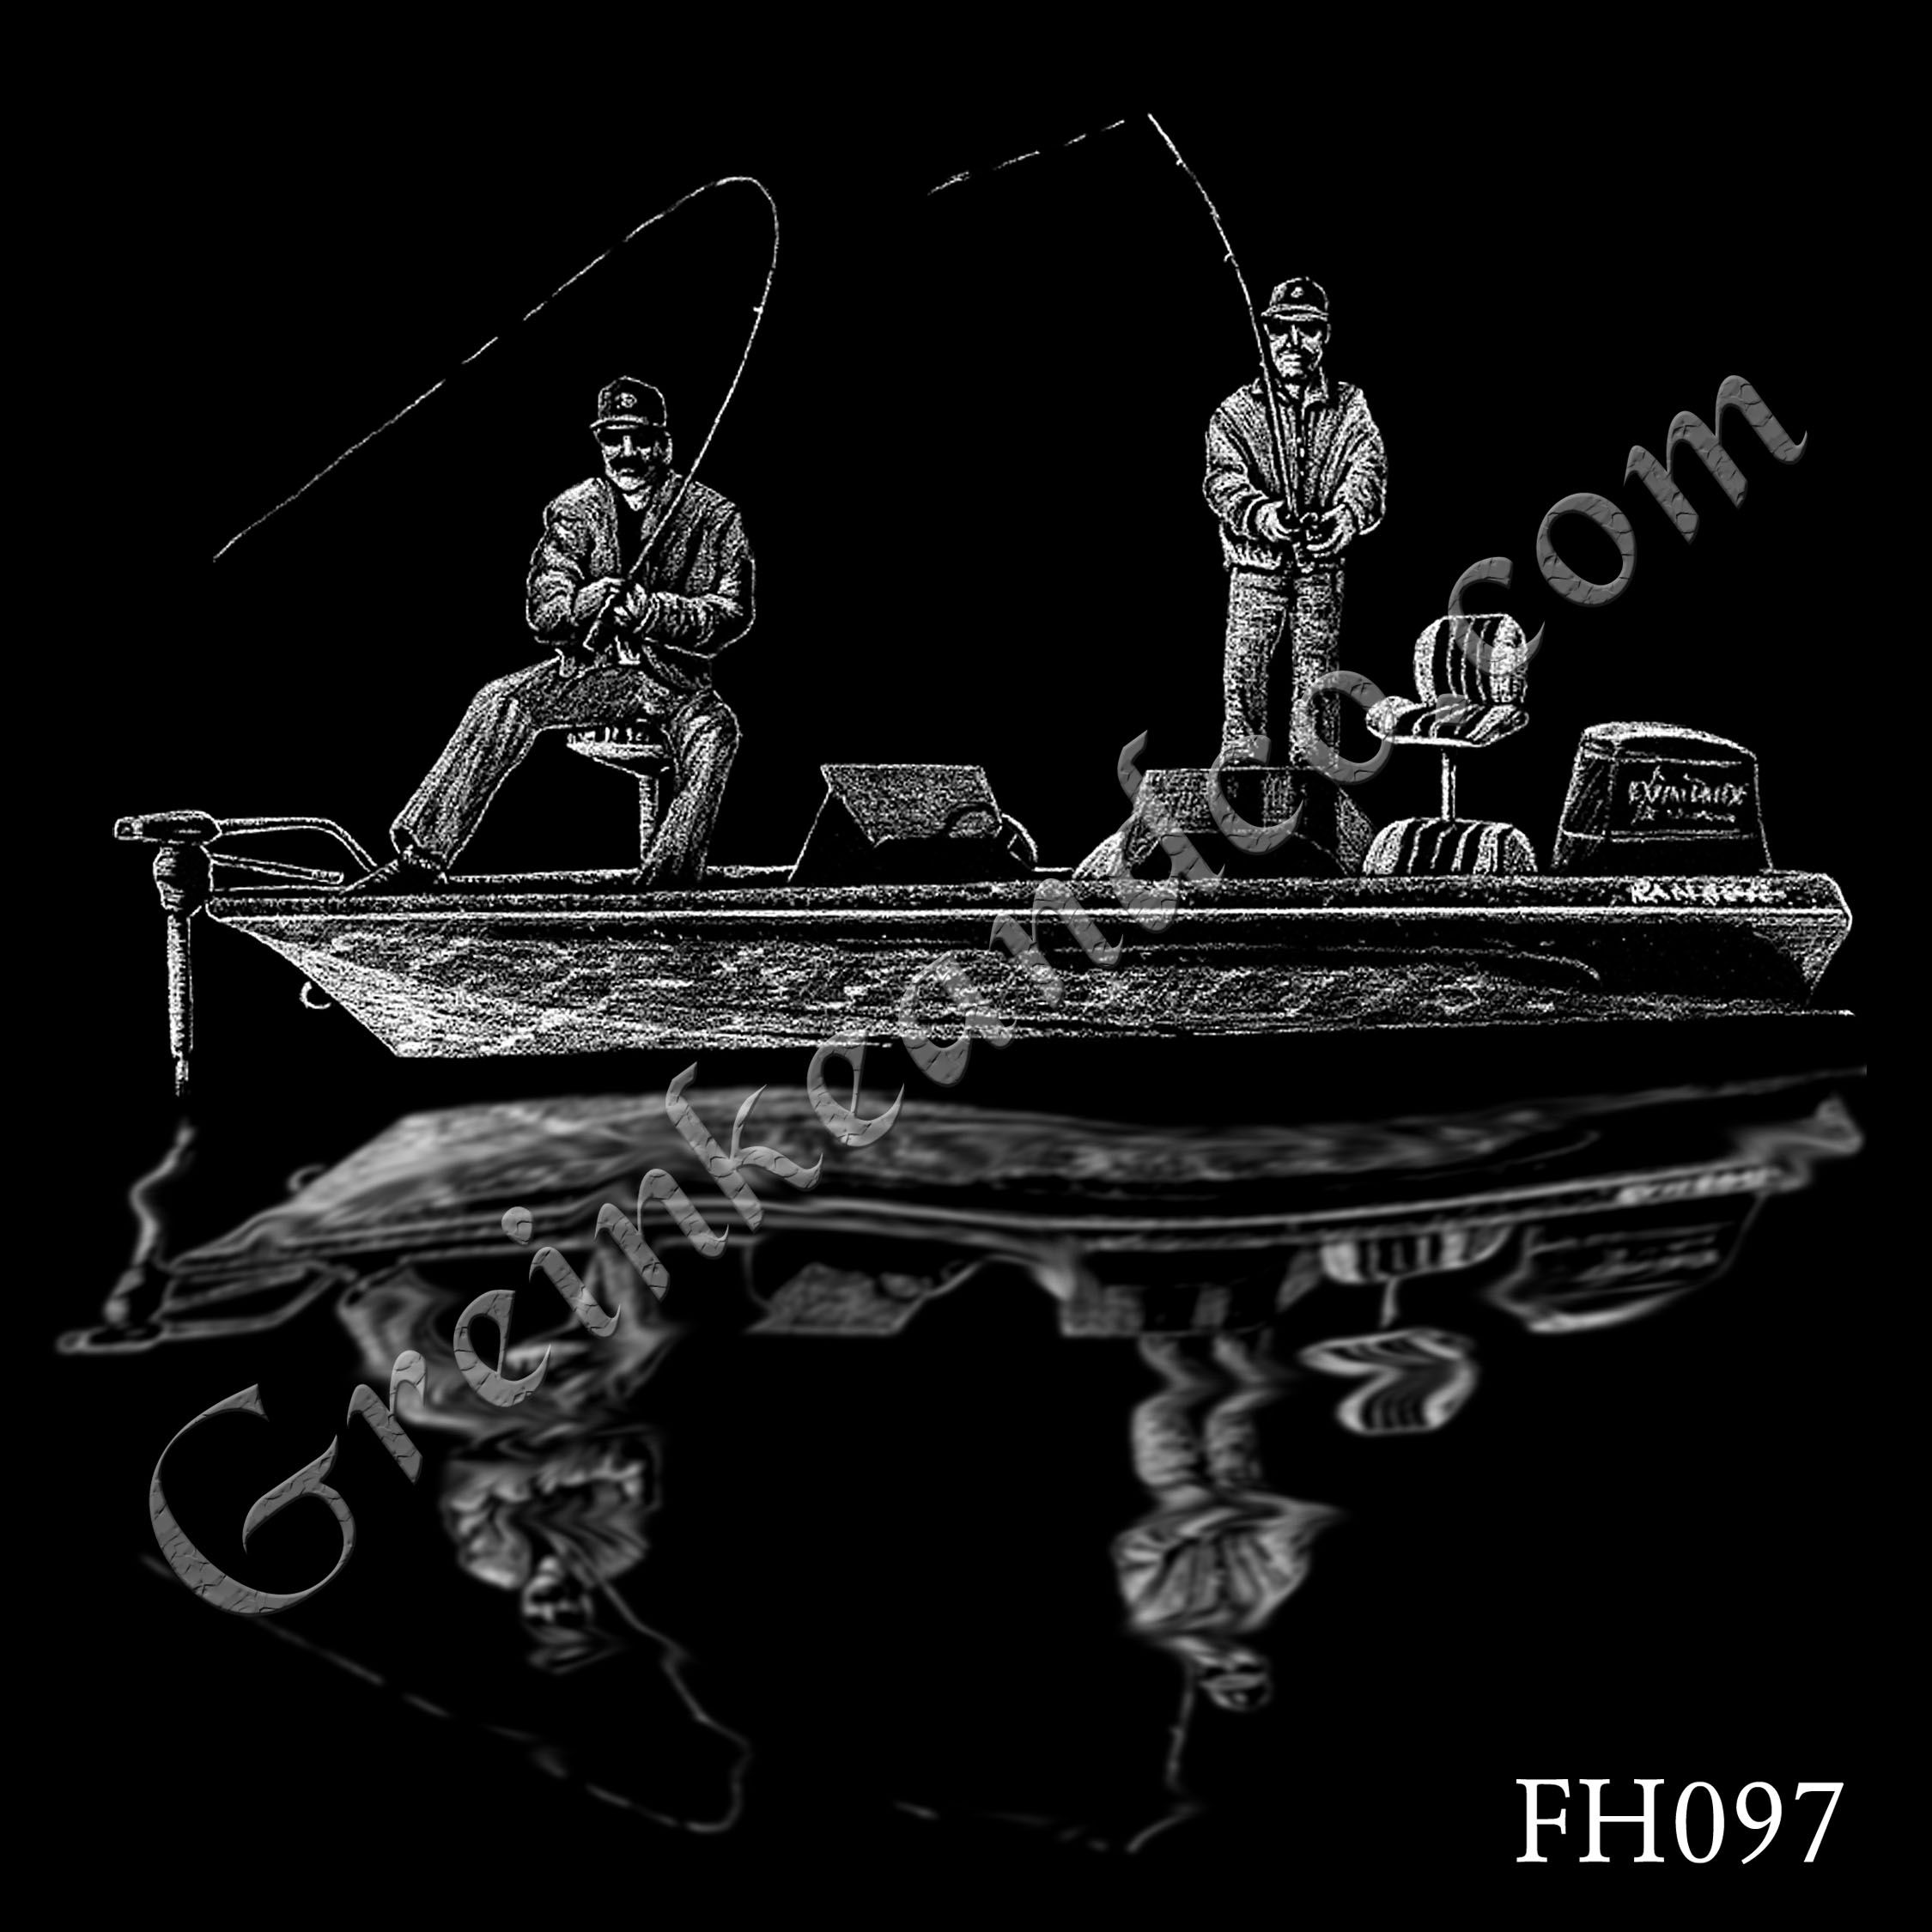 FH097 - Men Fishing